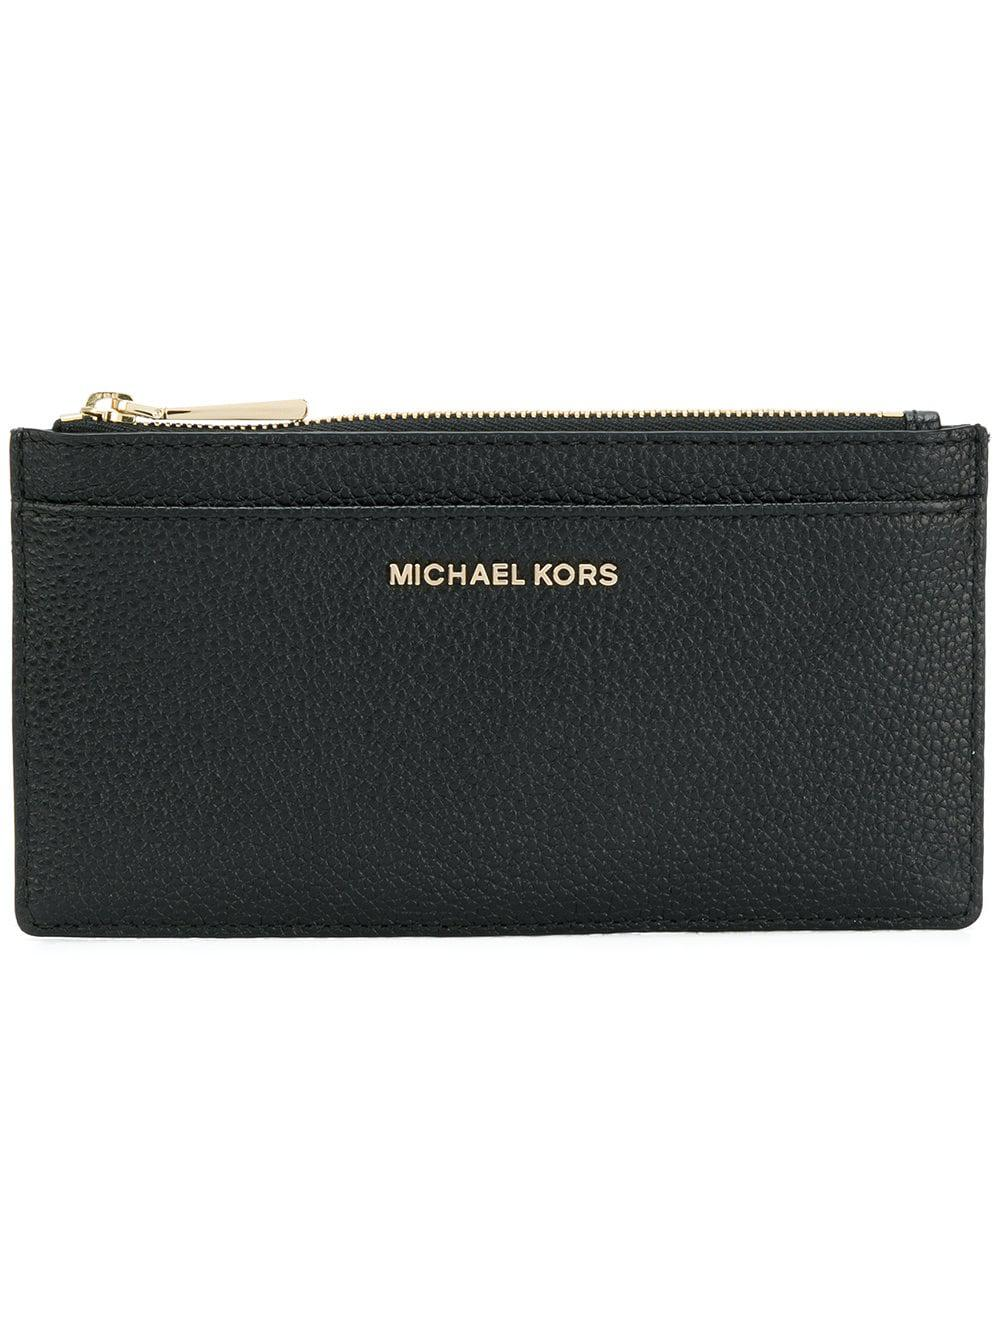 87ea0cdbf59b5 Lyst - MICHAEL Michael Kors Leather Card Case in Black - Save 18.75%